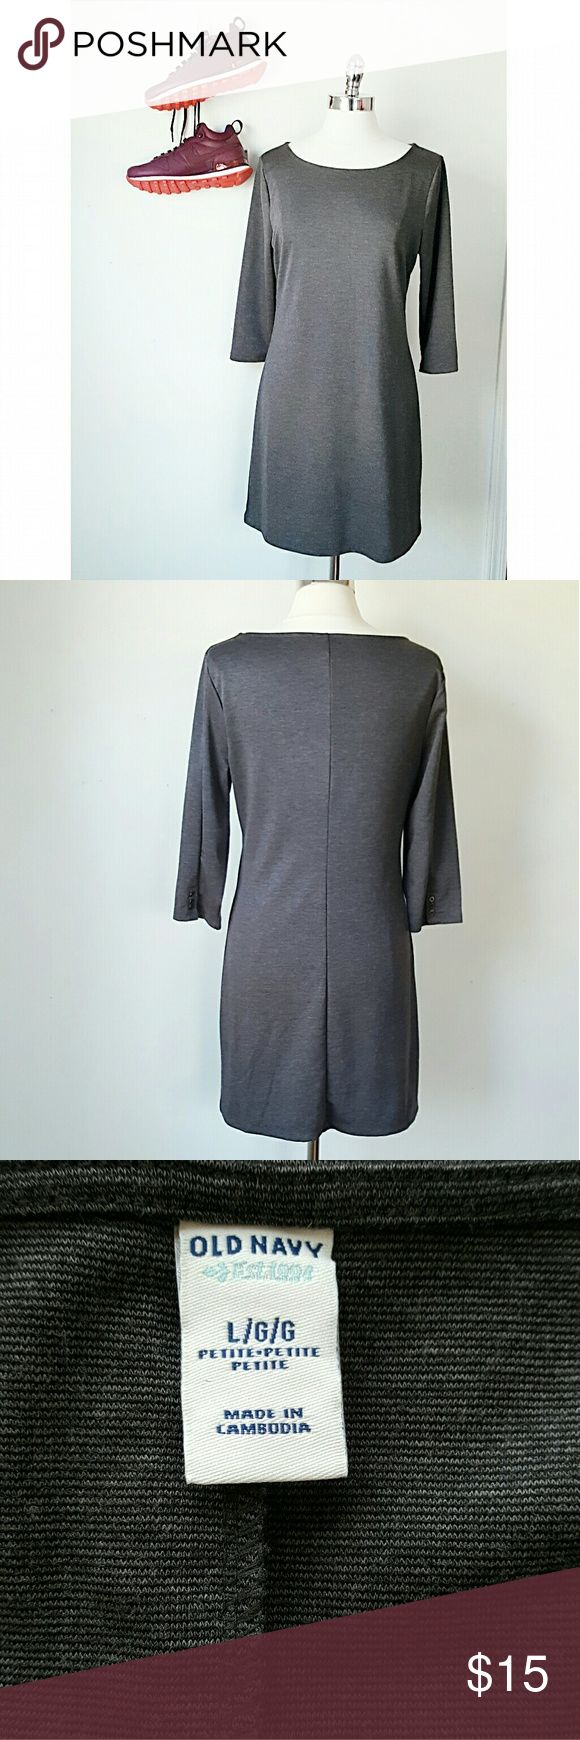 Old Navy Charcoal Ponte Dress- SIZE PETITE LARGE - Old Navy - Charcoal Grey - Polyester,  Rayon, Spandex - PETITE Size Large, 41in Chest, 18in Sleeve, 34in L - Boat neck, 3 button detail on sleeve, Work to play! Old Navy Dresses